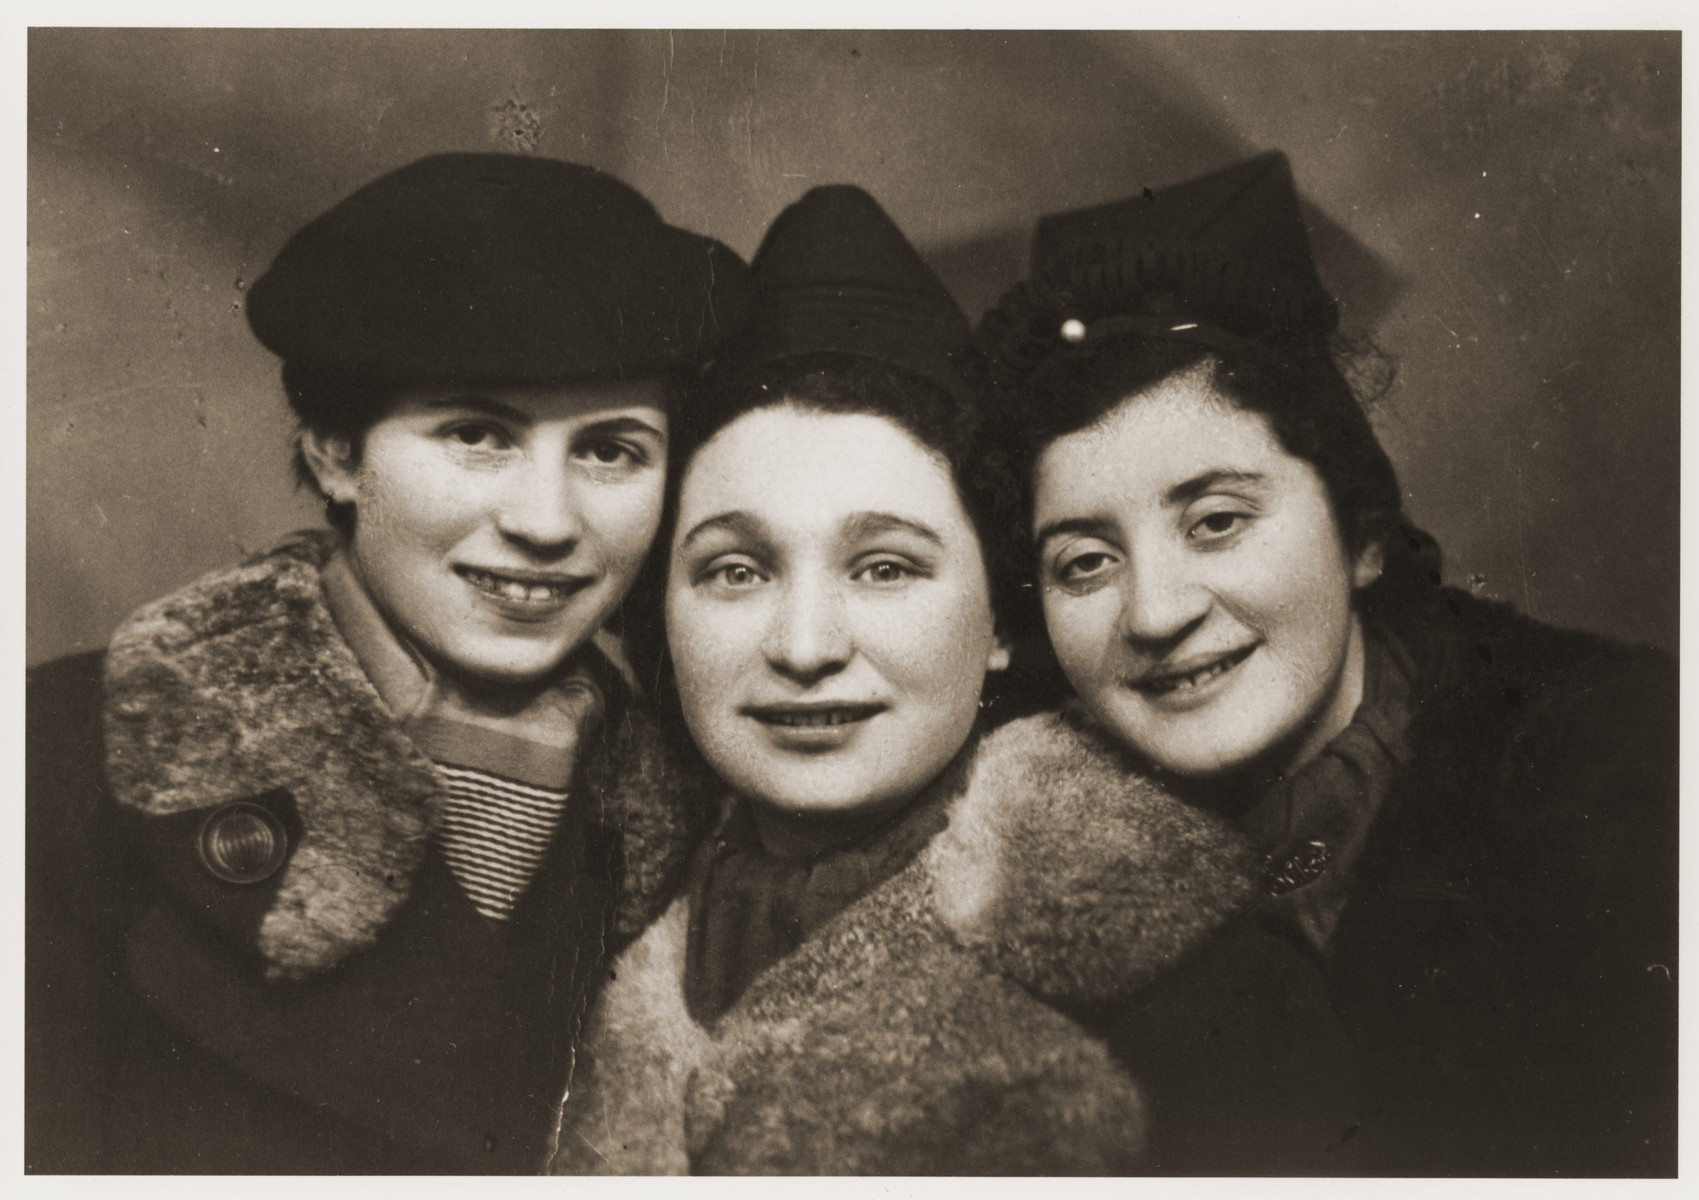 Studio portrait of three Jewish girlfriends in Kalisz, Poland.  Among those pictured is Elli Grinberg.